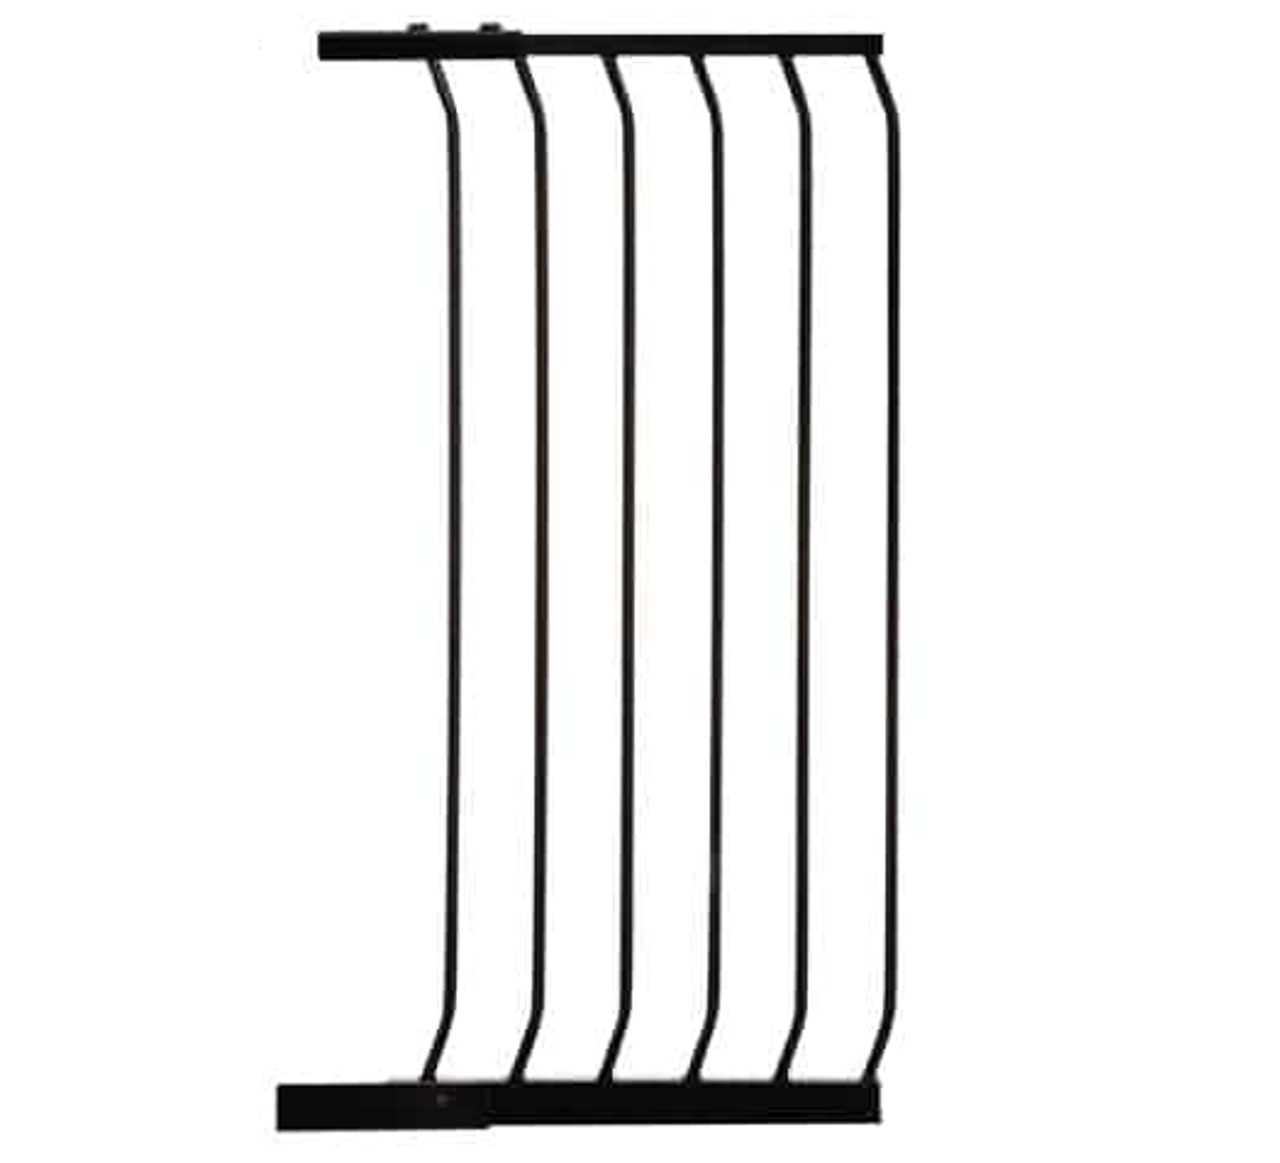 Dreambaby Chelsea ExtraTall Gate Extension 45cm at Baby Barn Discounts Dreambaby® Chelsea Tall Gates are 1M high and provide greater security and peace of mind for busy parents.